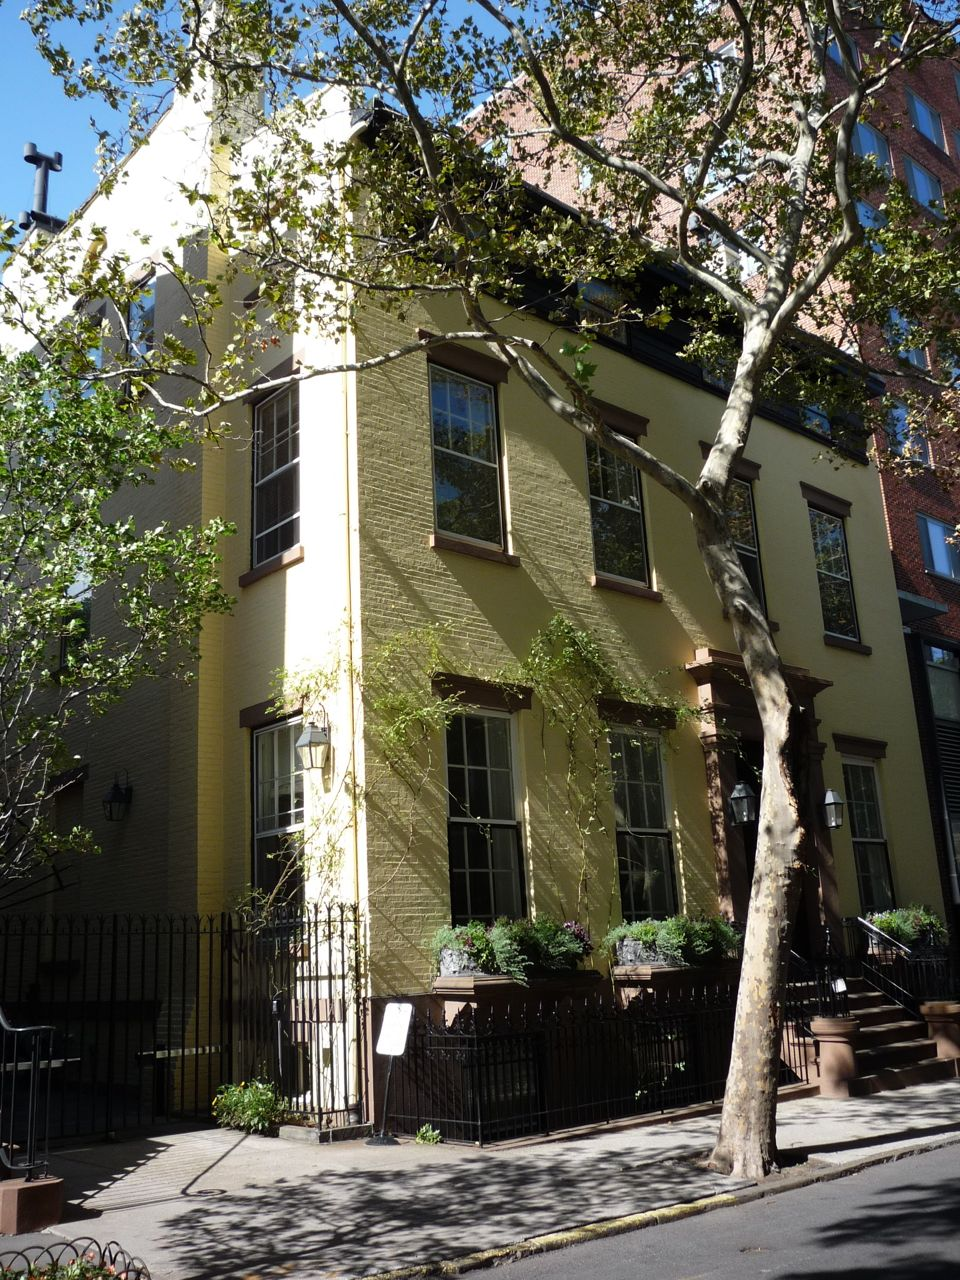 The advantages of a new perspective a literary walk in for 2 montague terrace brooklyn heights